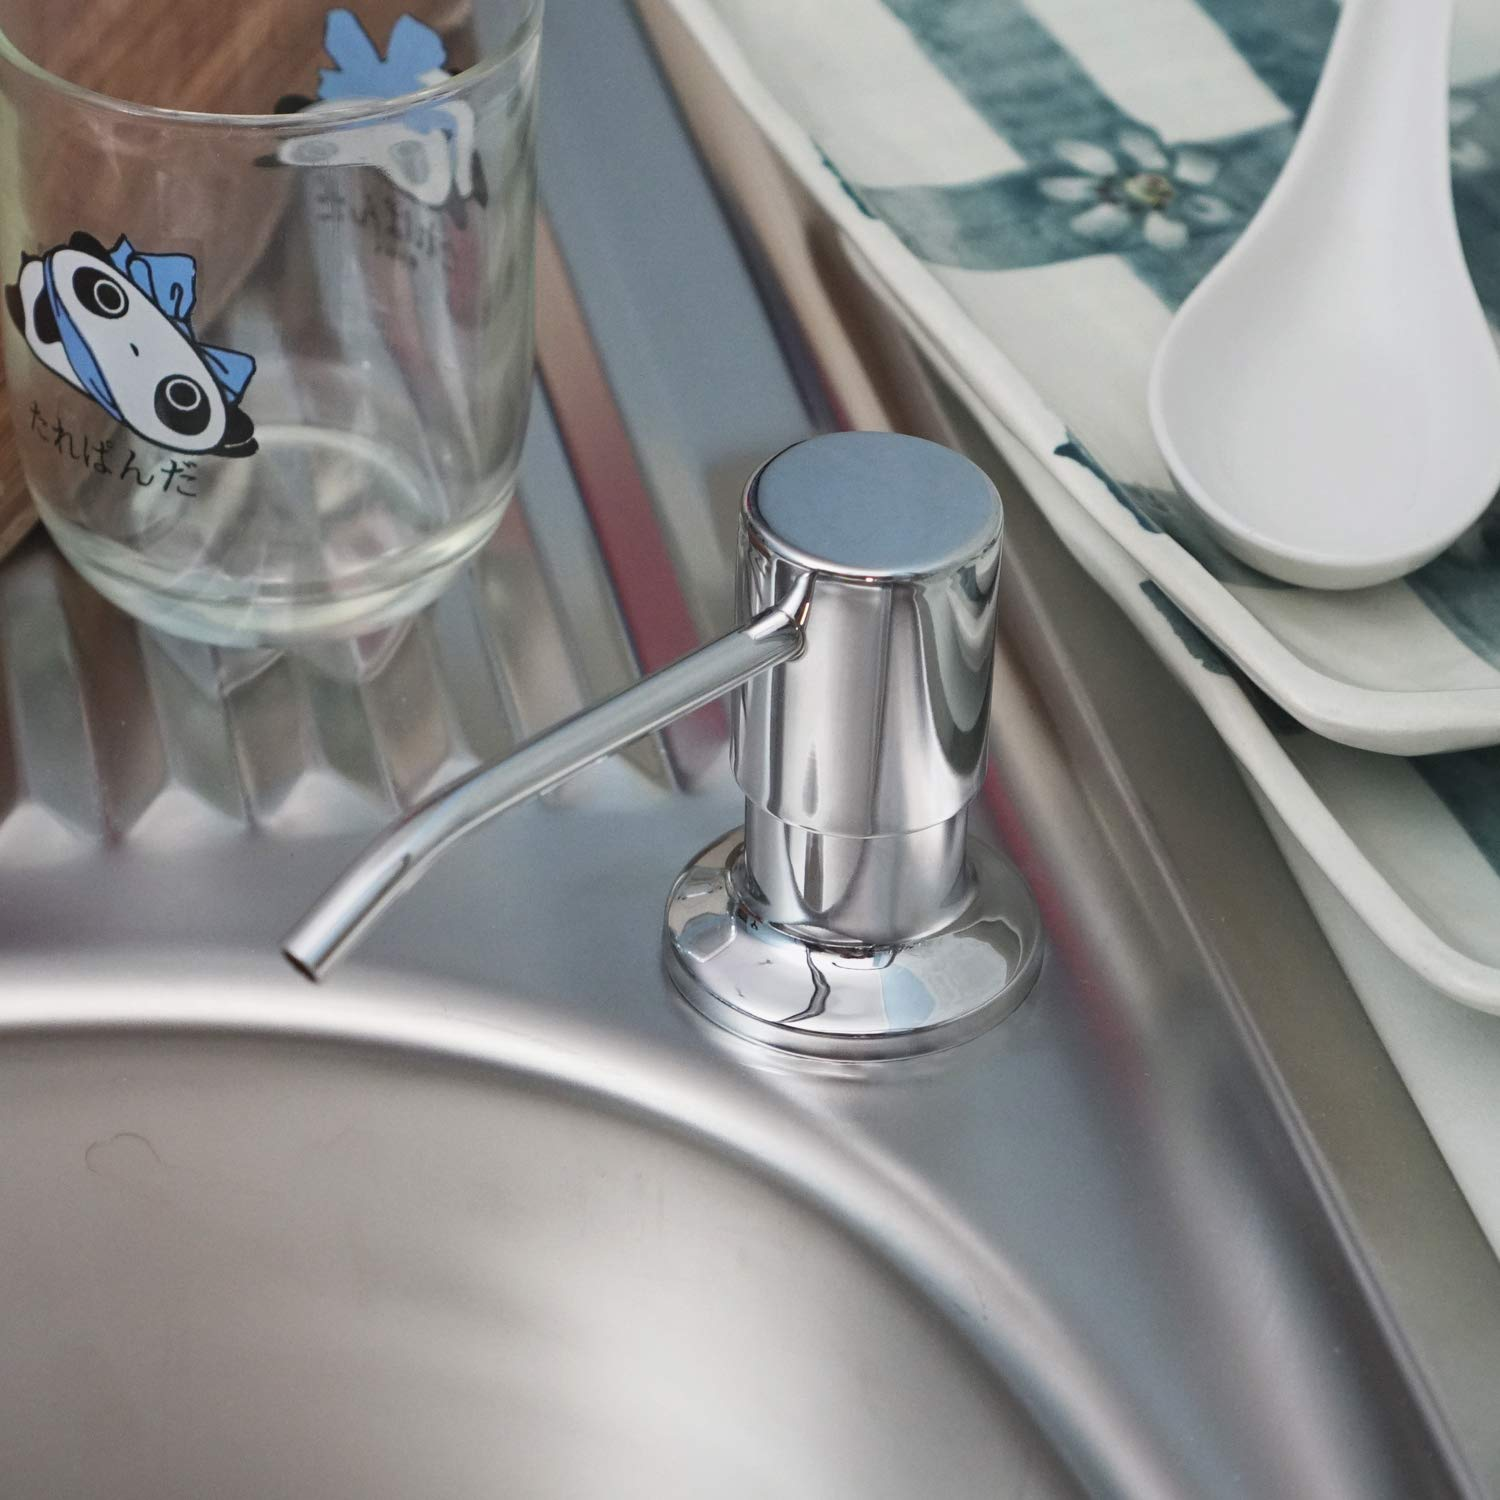 Soap Dispenser for Kitchen Sink (Chrome) Refill From the Top